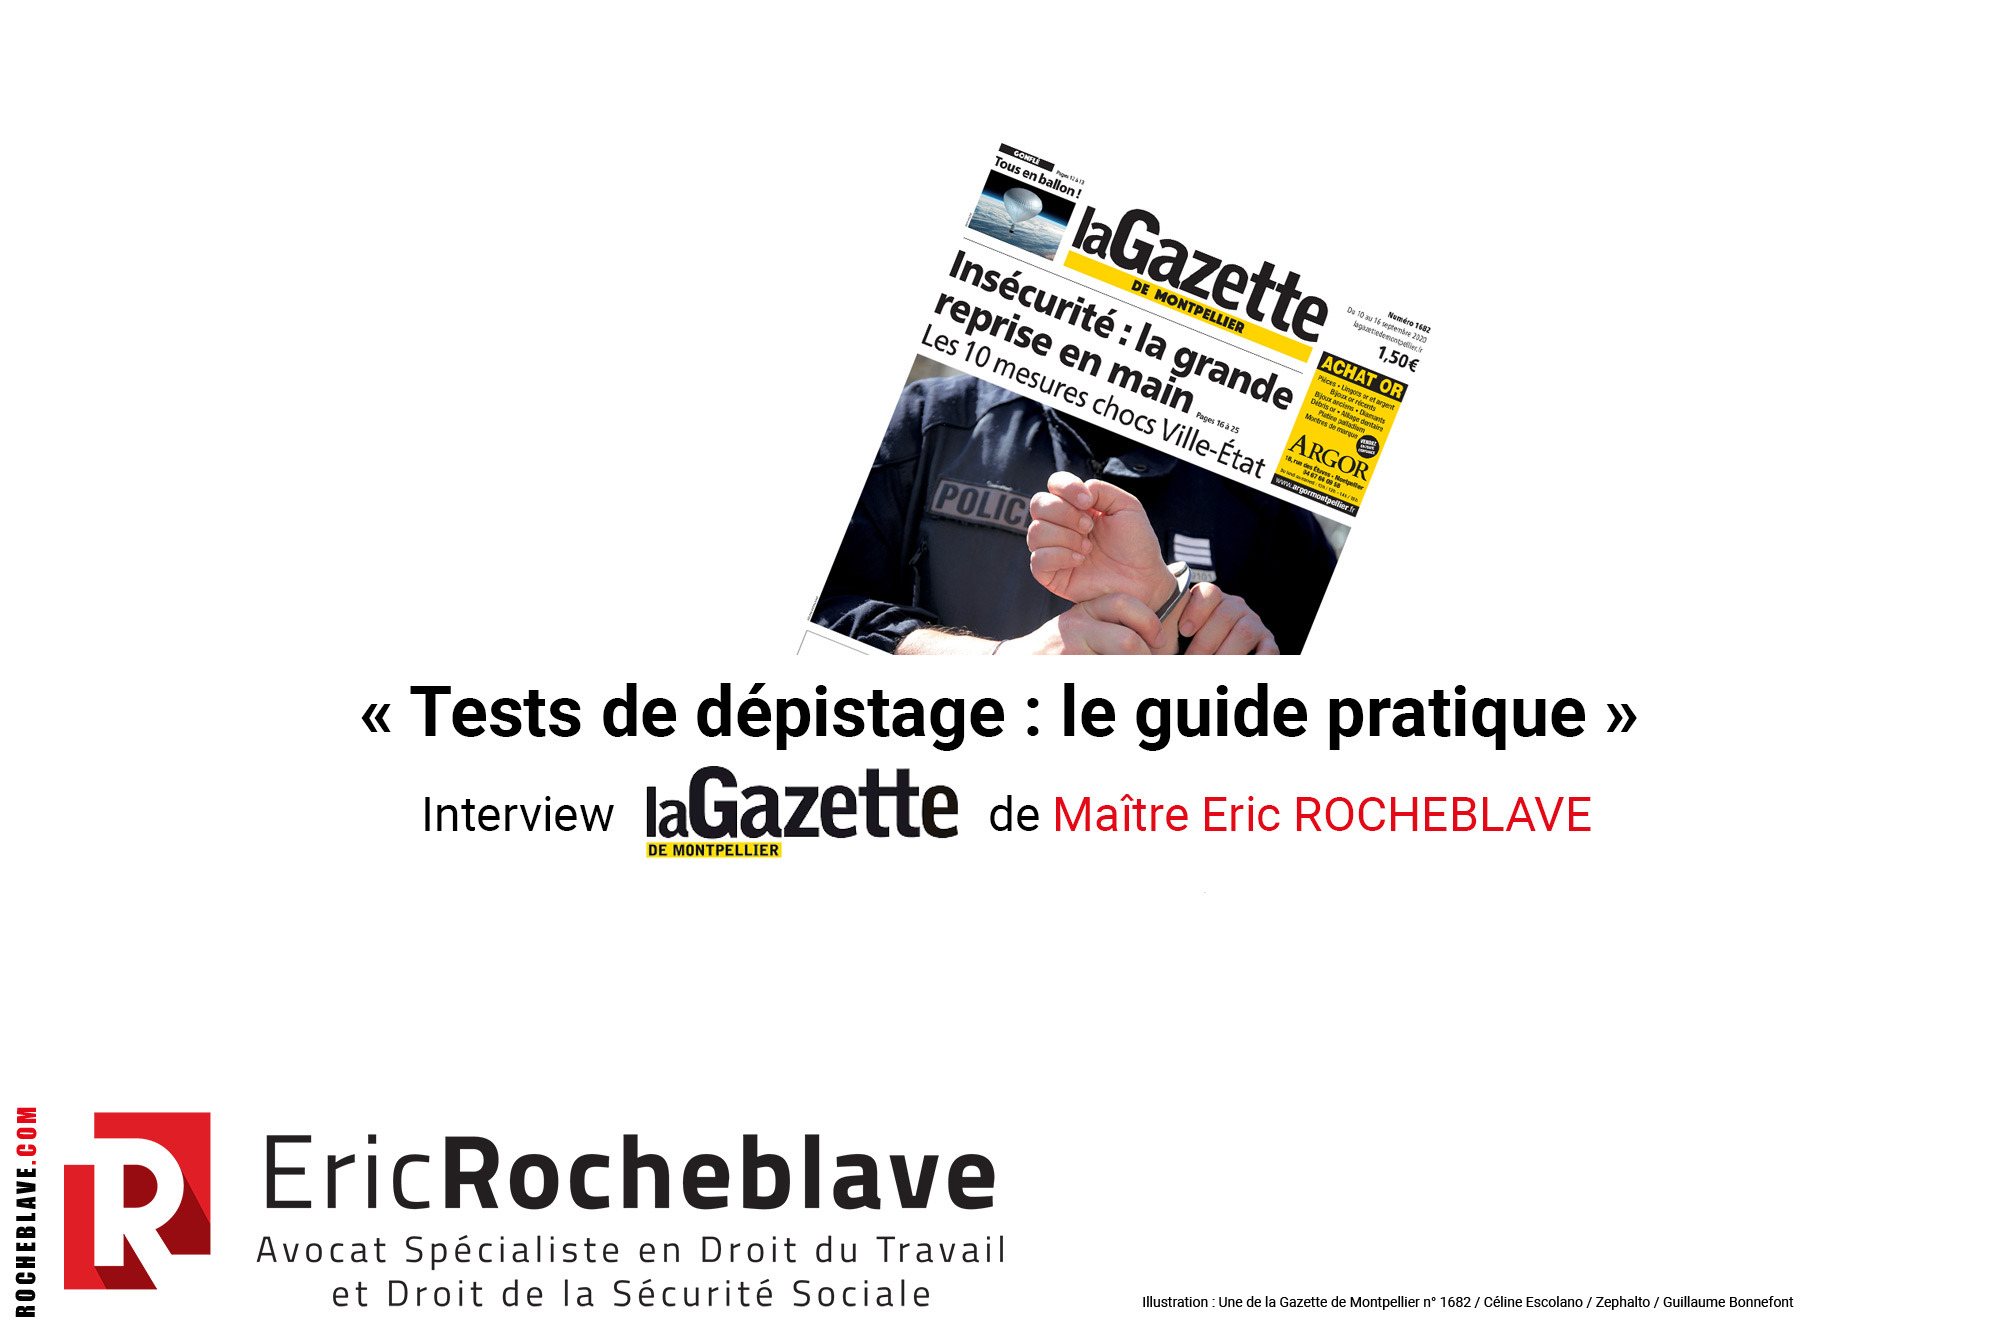 « Tests de dépistage : le guide pratique » Interview la Gazette de Montpellier de Maître Eric ROCHEBLAVE